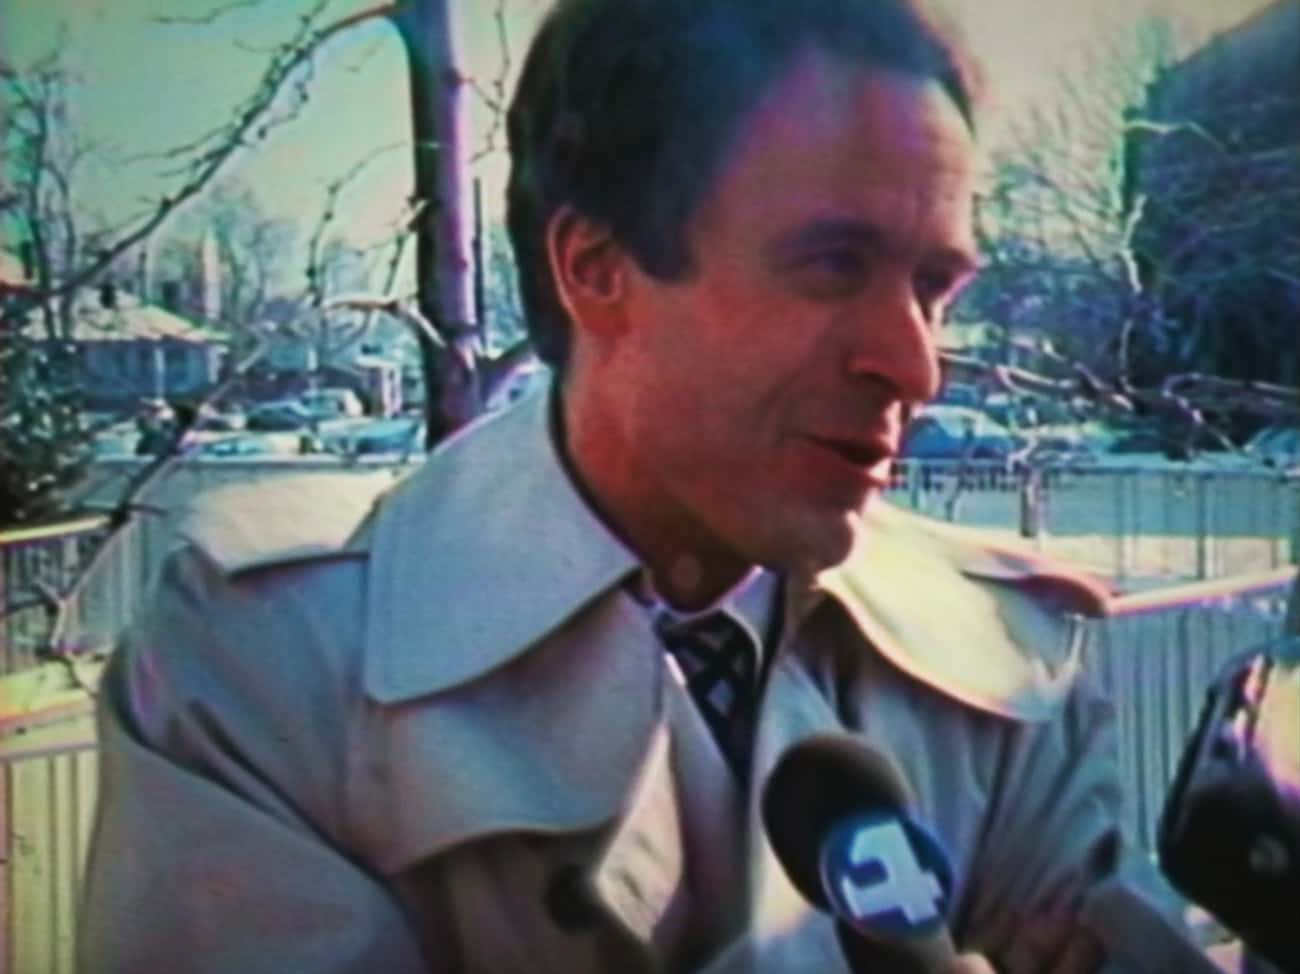 It Doesn't Delve Into The Vict is listed (or ranked) 4 on the list Why Netflix's Ted Bundy Series Is The Most Disturbing Crime Documentary You'll See This Year